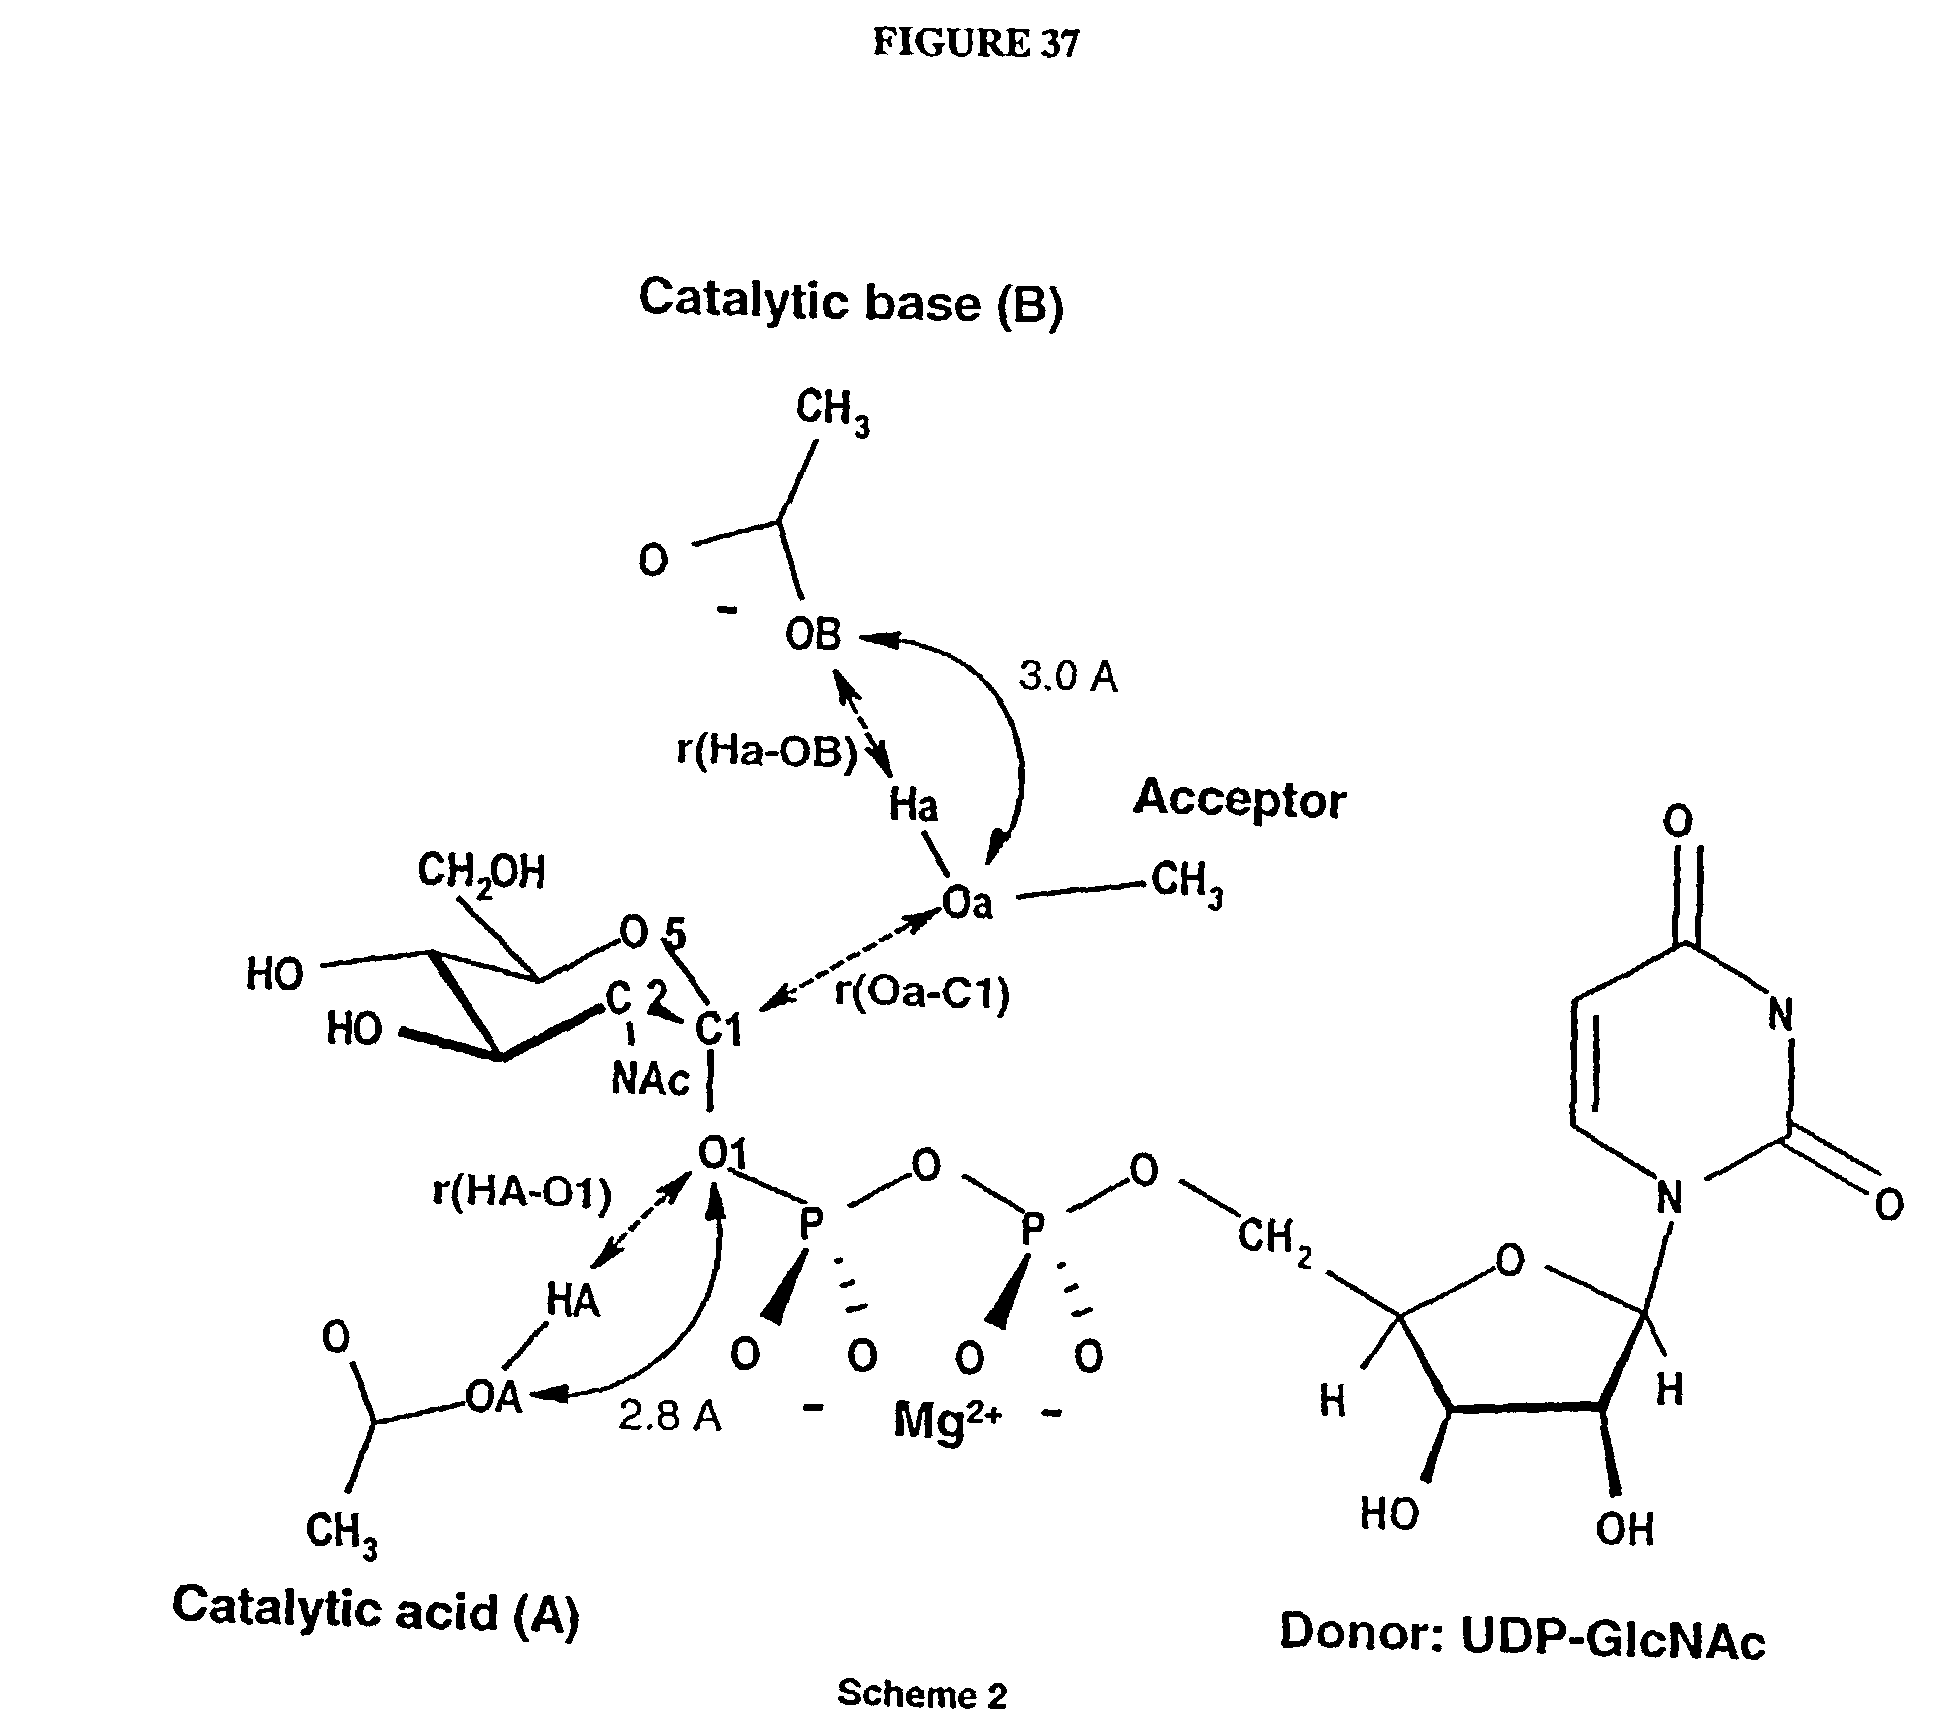 8d9ec69fd4 US20040049352A1 - Designing modulators for glycosyltransferases - Google  Patents